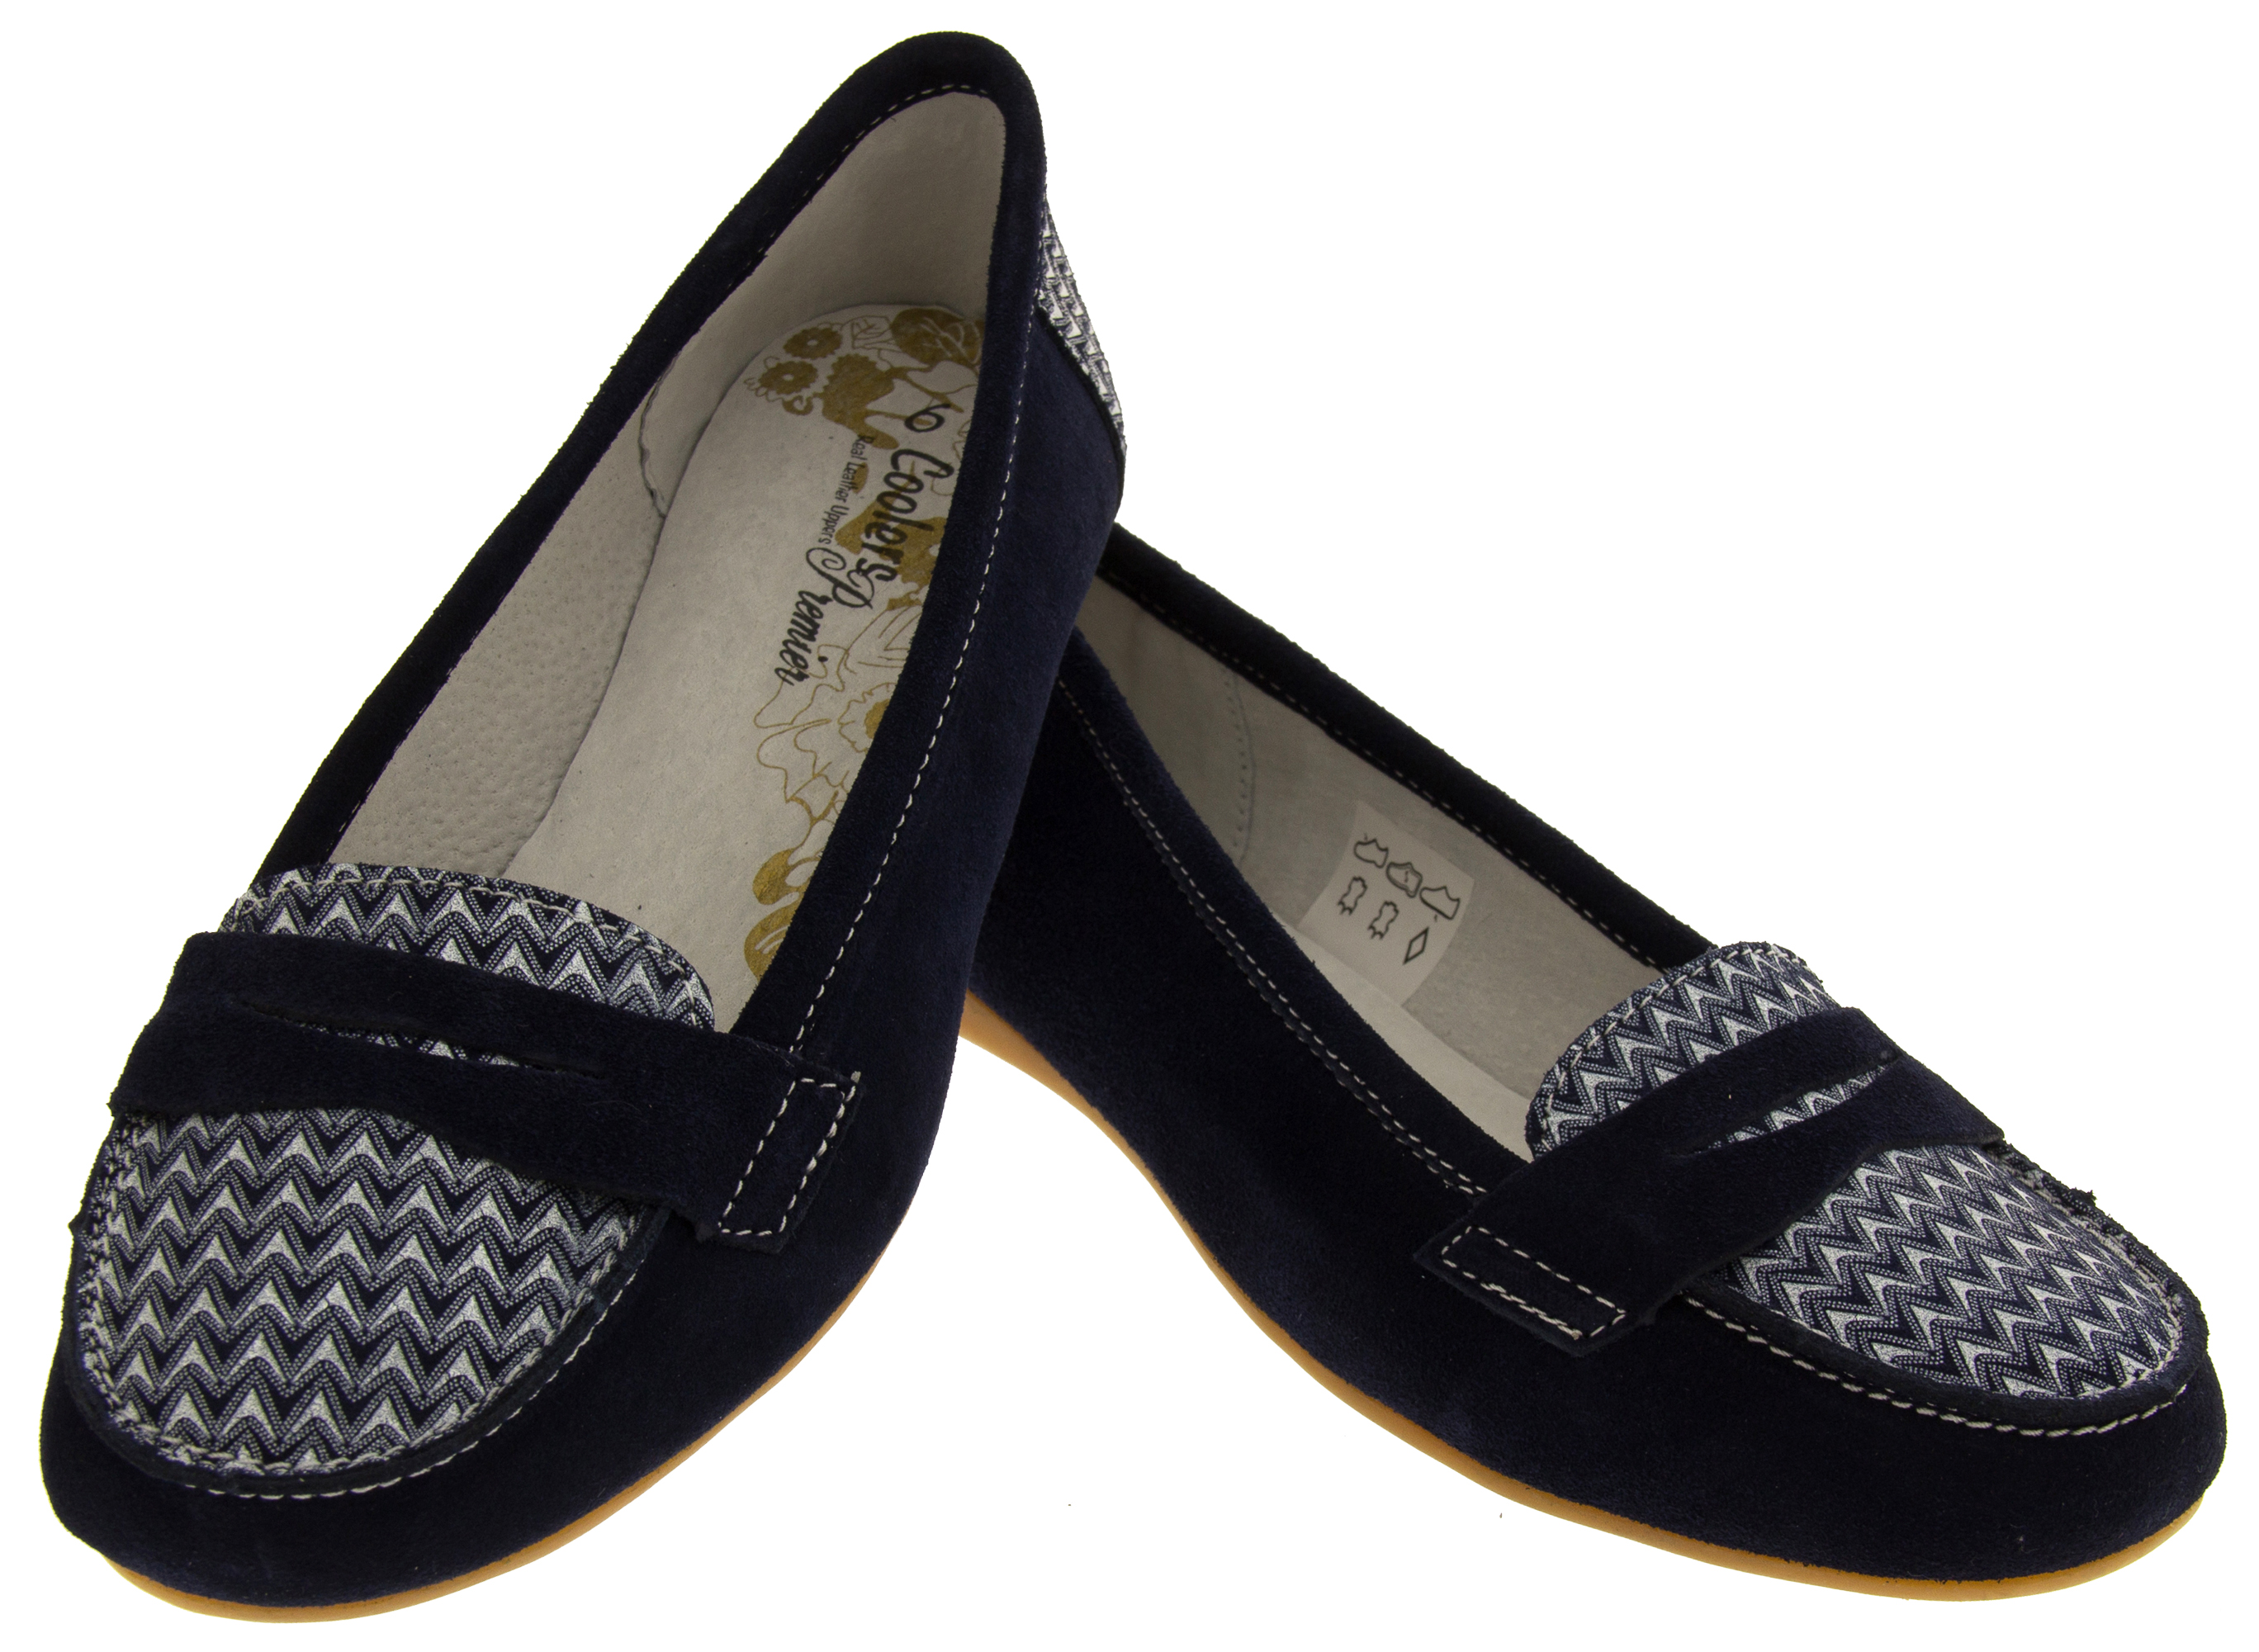 Womens Navy Blue Suede Leather Loafers Shoes Ladies COOLERS Slip On Flats Size 7 | EBay